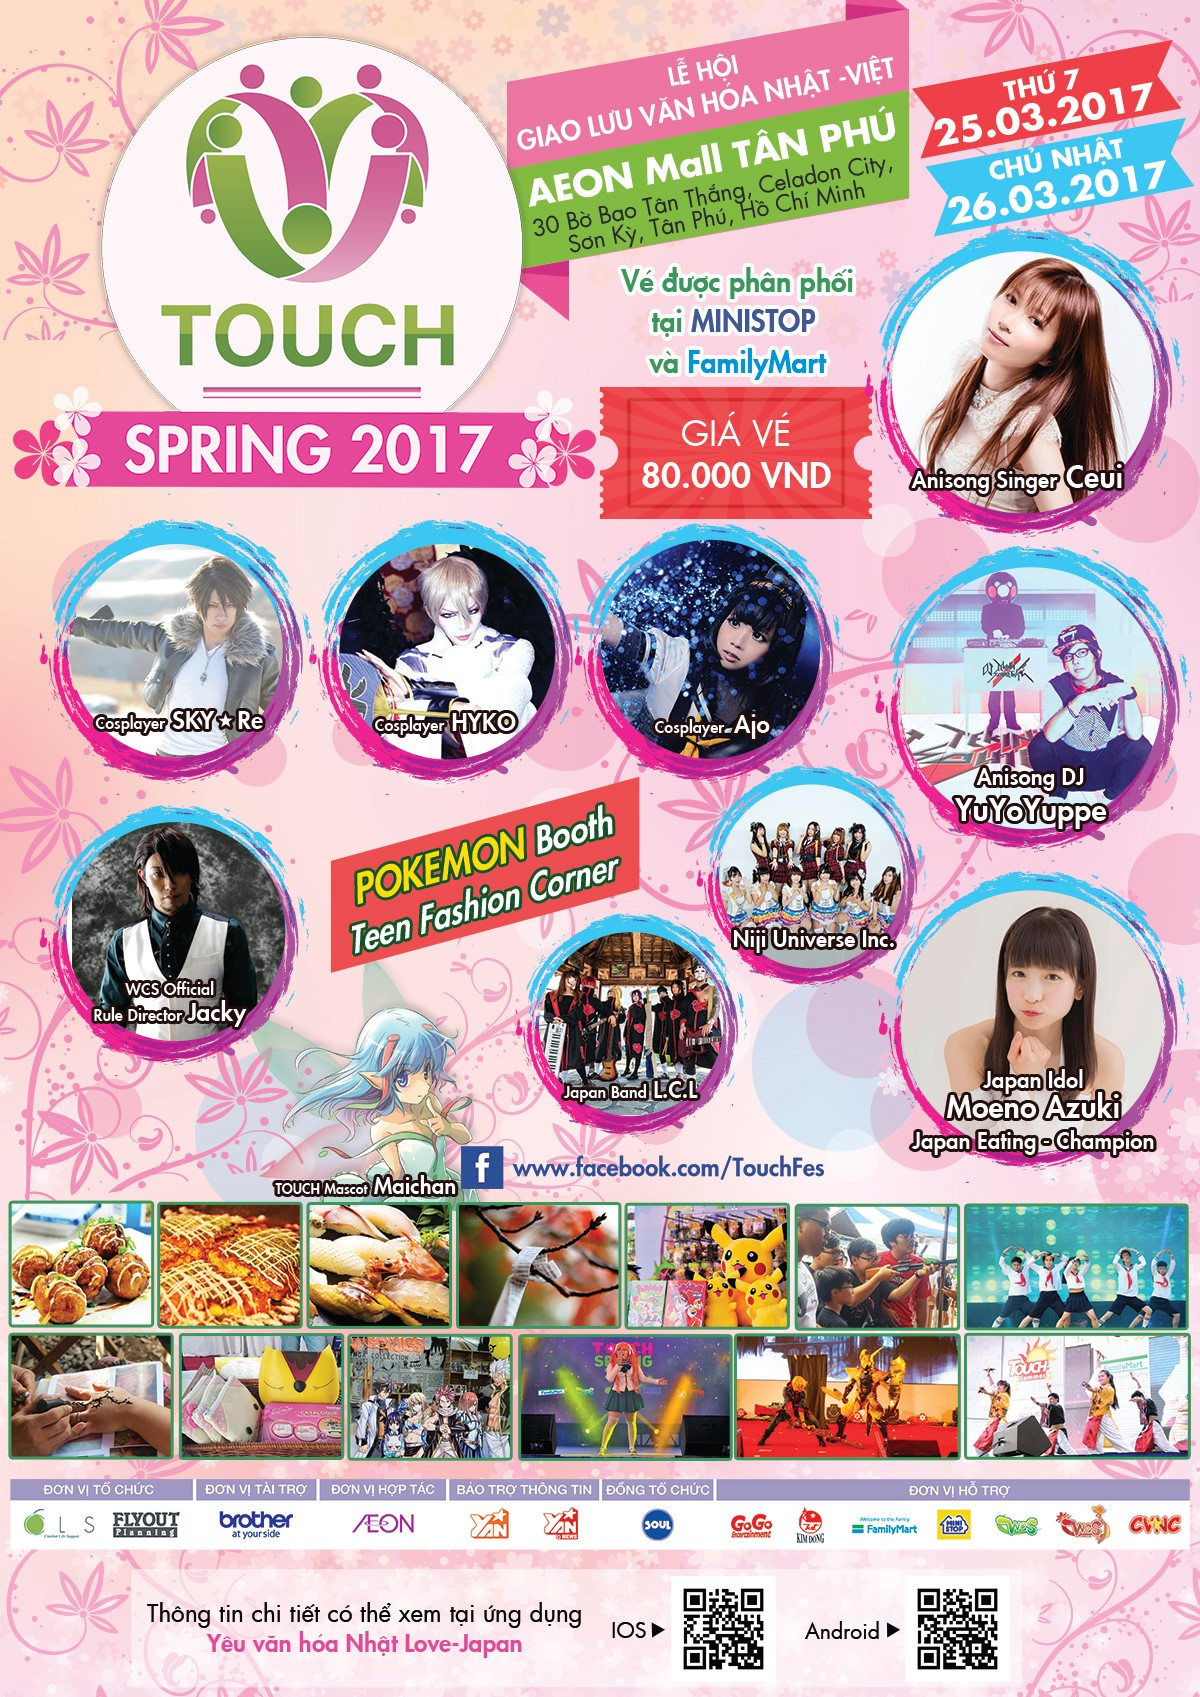 SGN2017ー3ー25-26